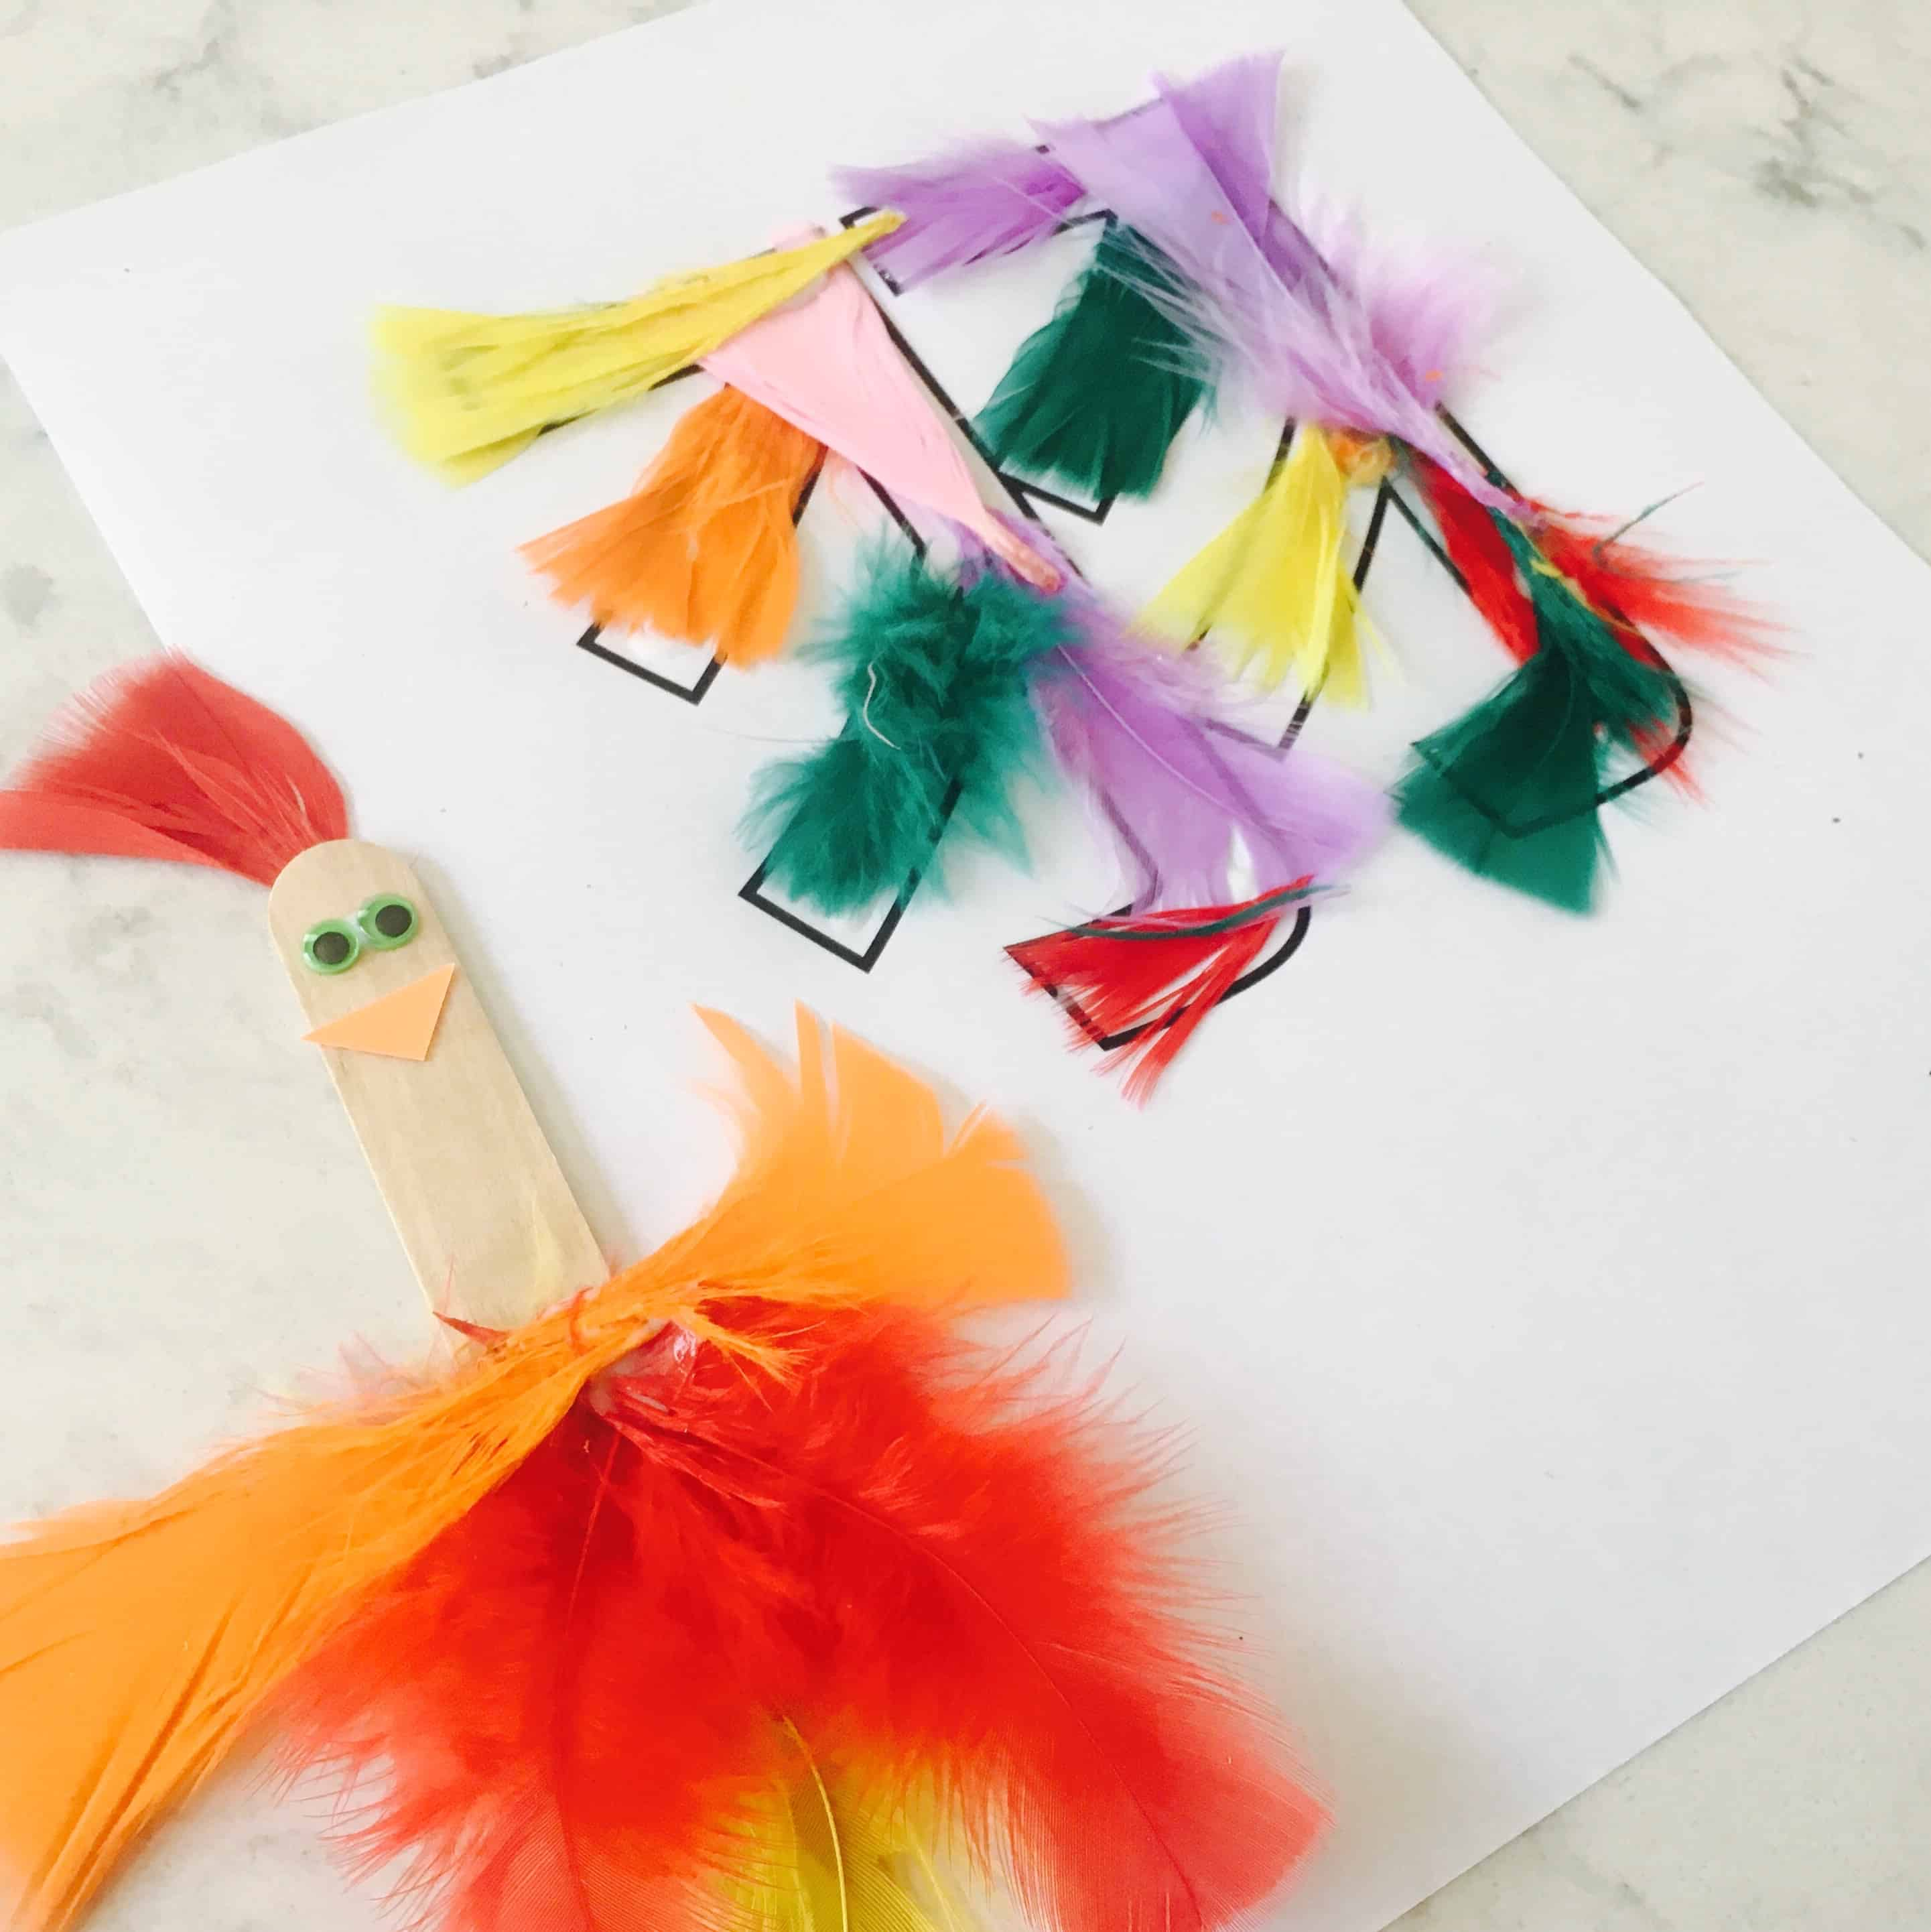 Bilingual Learning About Feathers